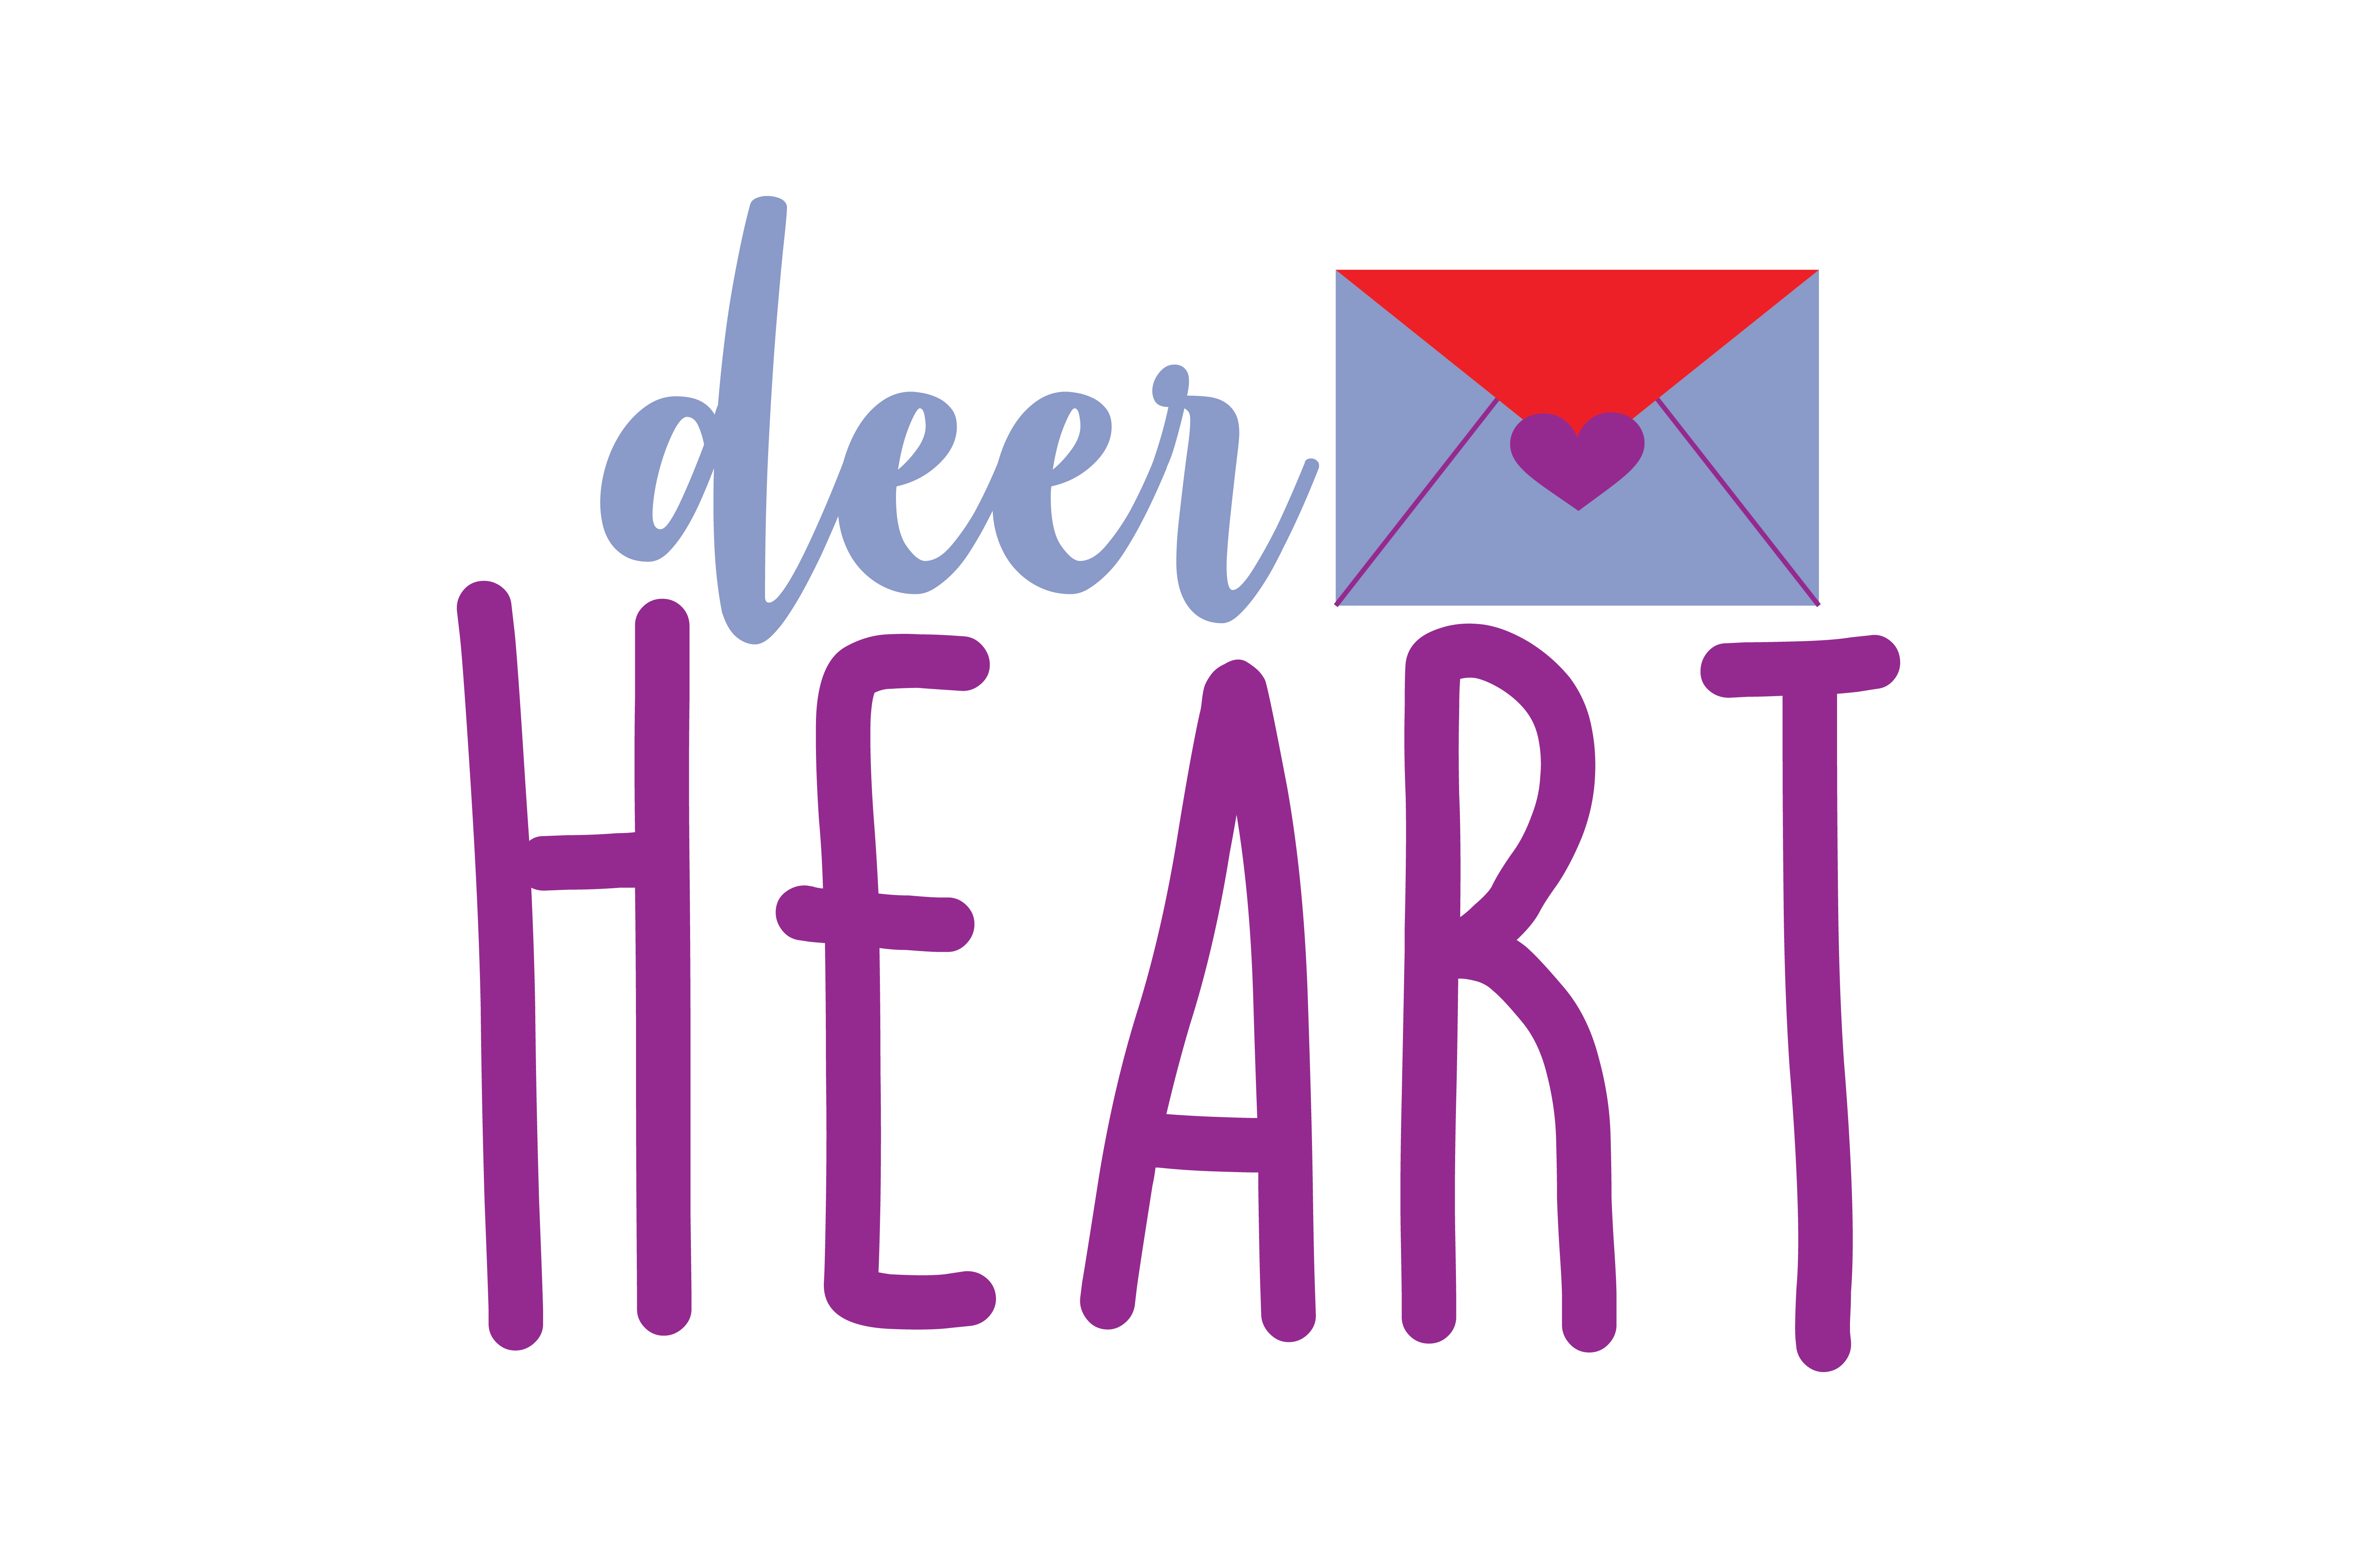 Download Free Deer Heart Quote Svg Cut Graphic By Thelucky Creative Fabrica for Cricut Explore, Silhouette and other cutting machines.